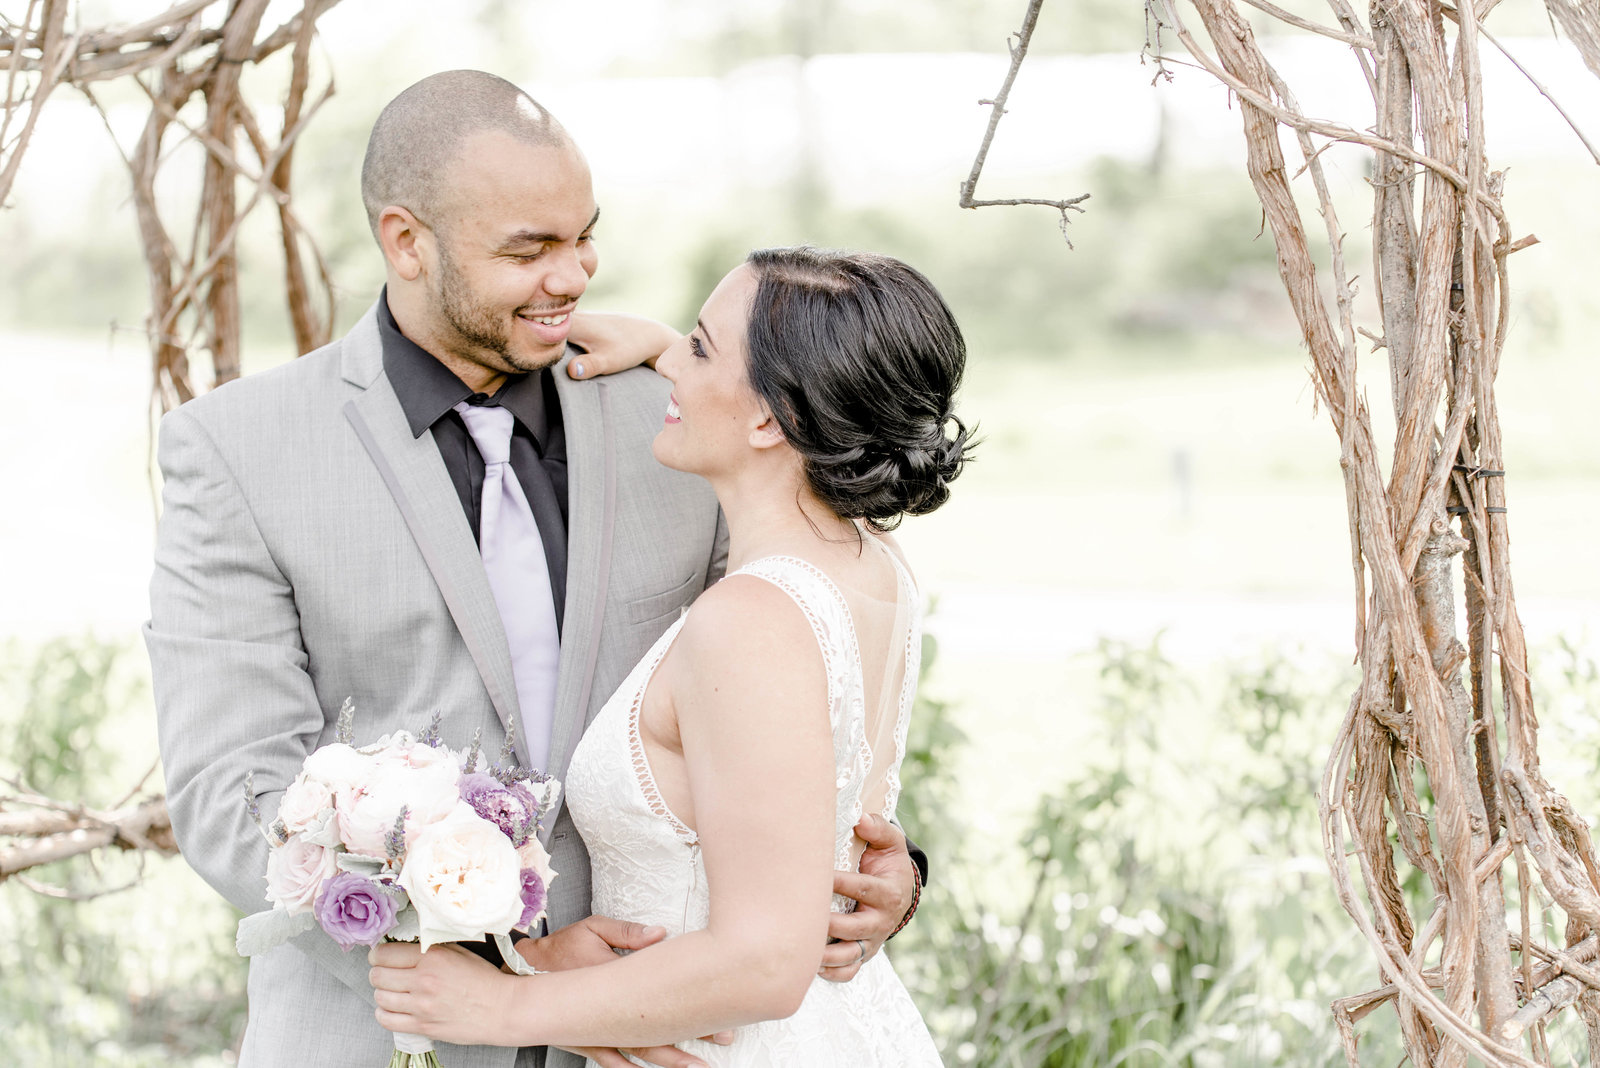 Cassidy_Alane_Photography-Jorgensen_Farm-Ohio_Wedding_Photographer-Lavender_Styled_Shoot-24